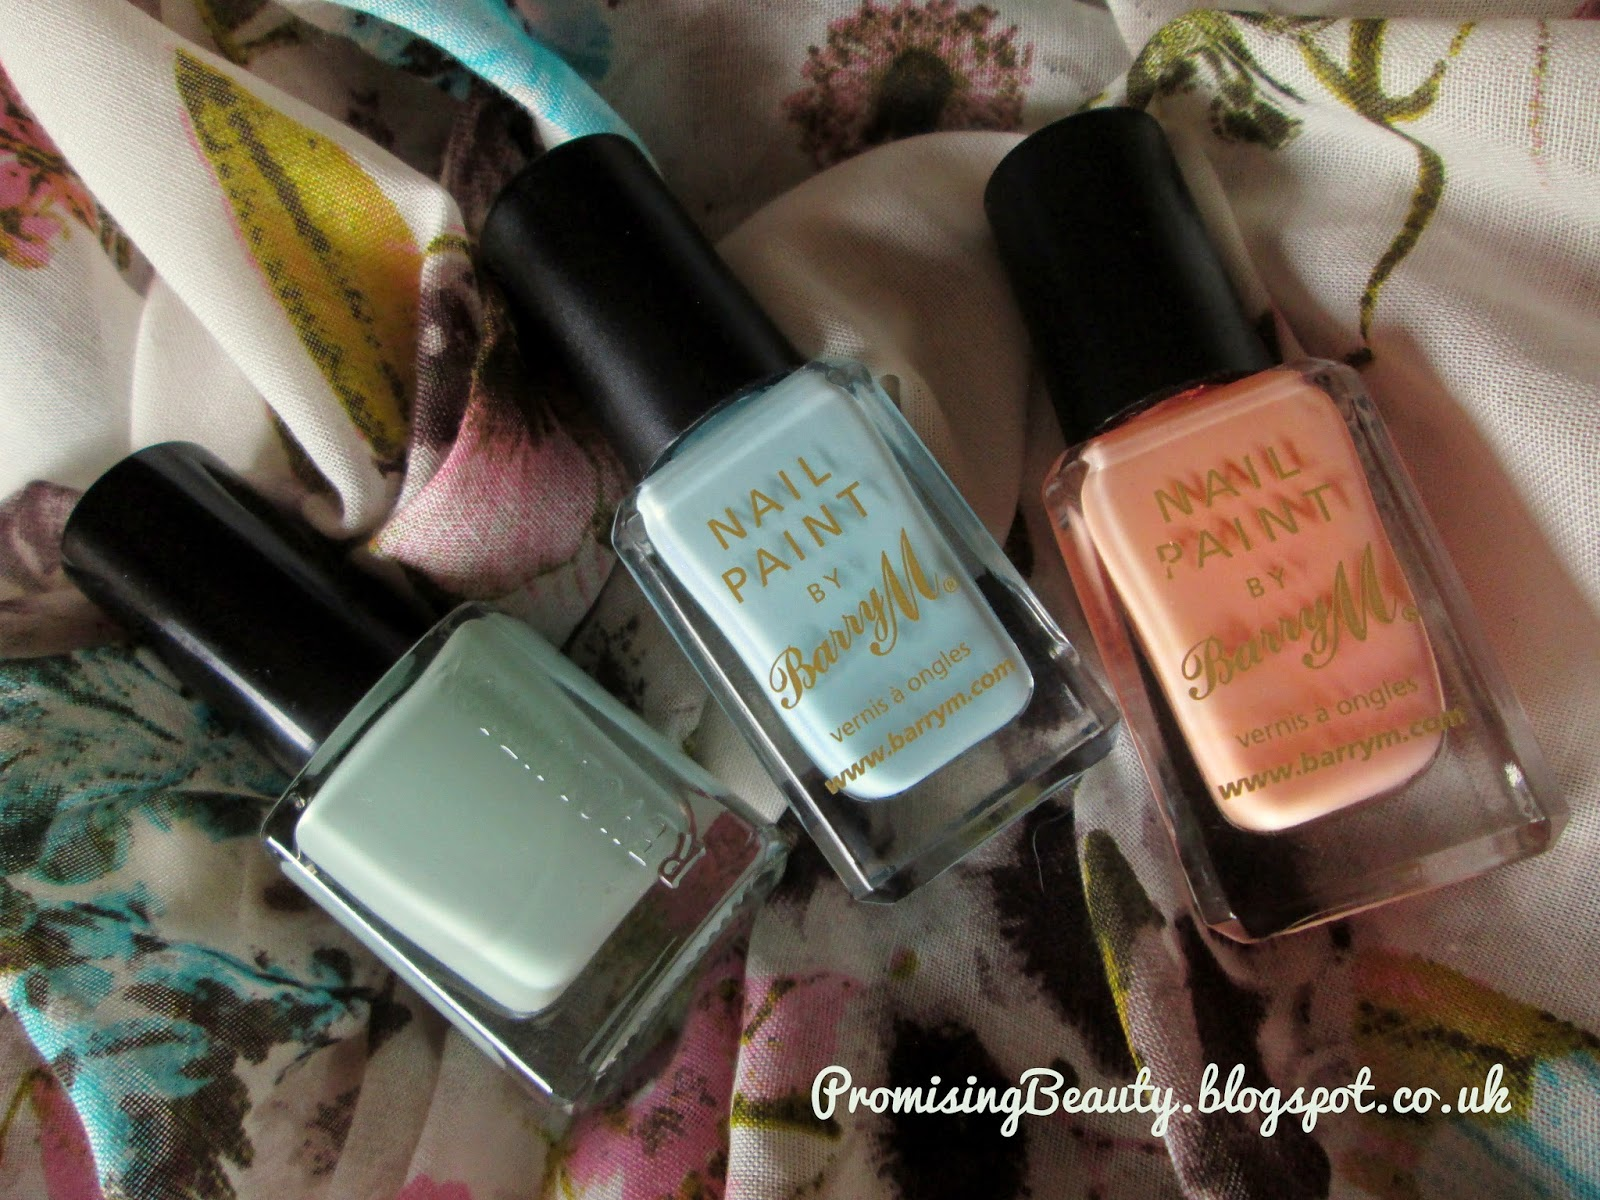 3 nail polishes in pastel shades of mint green, light blue and peach orange. Make-up revolution Cool Days, Barry M blue Moon and Peach Melba nail polishes.